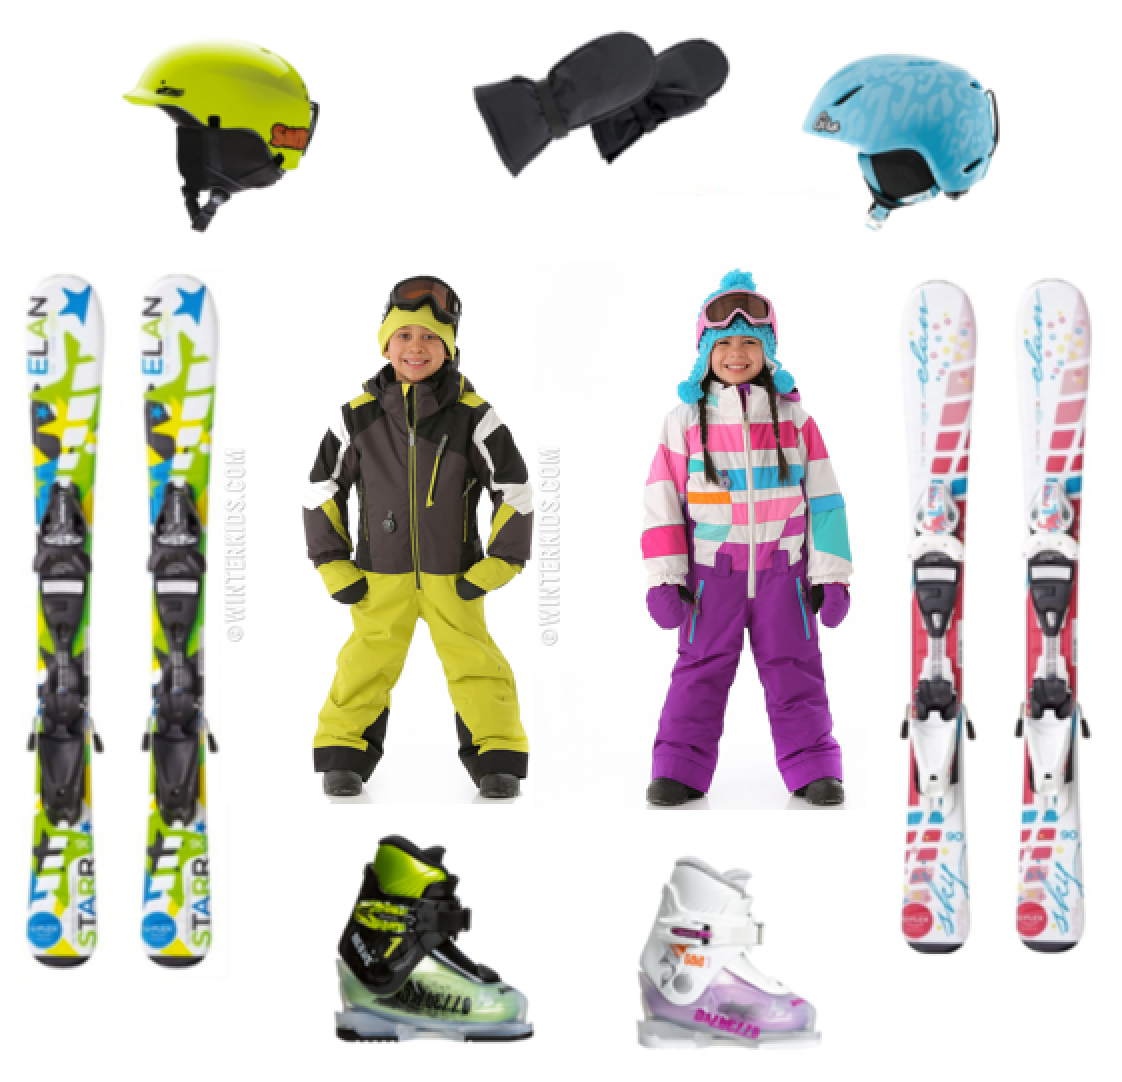 c7c1600b02dd cute kids ski and snow gear for the 2014 - 2015 season